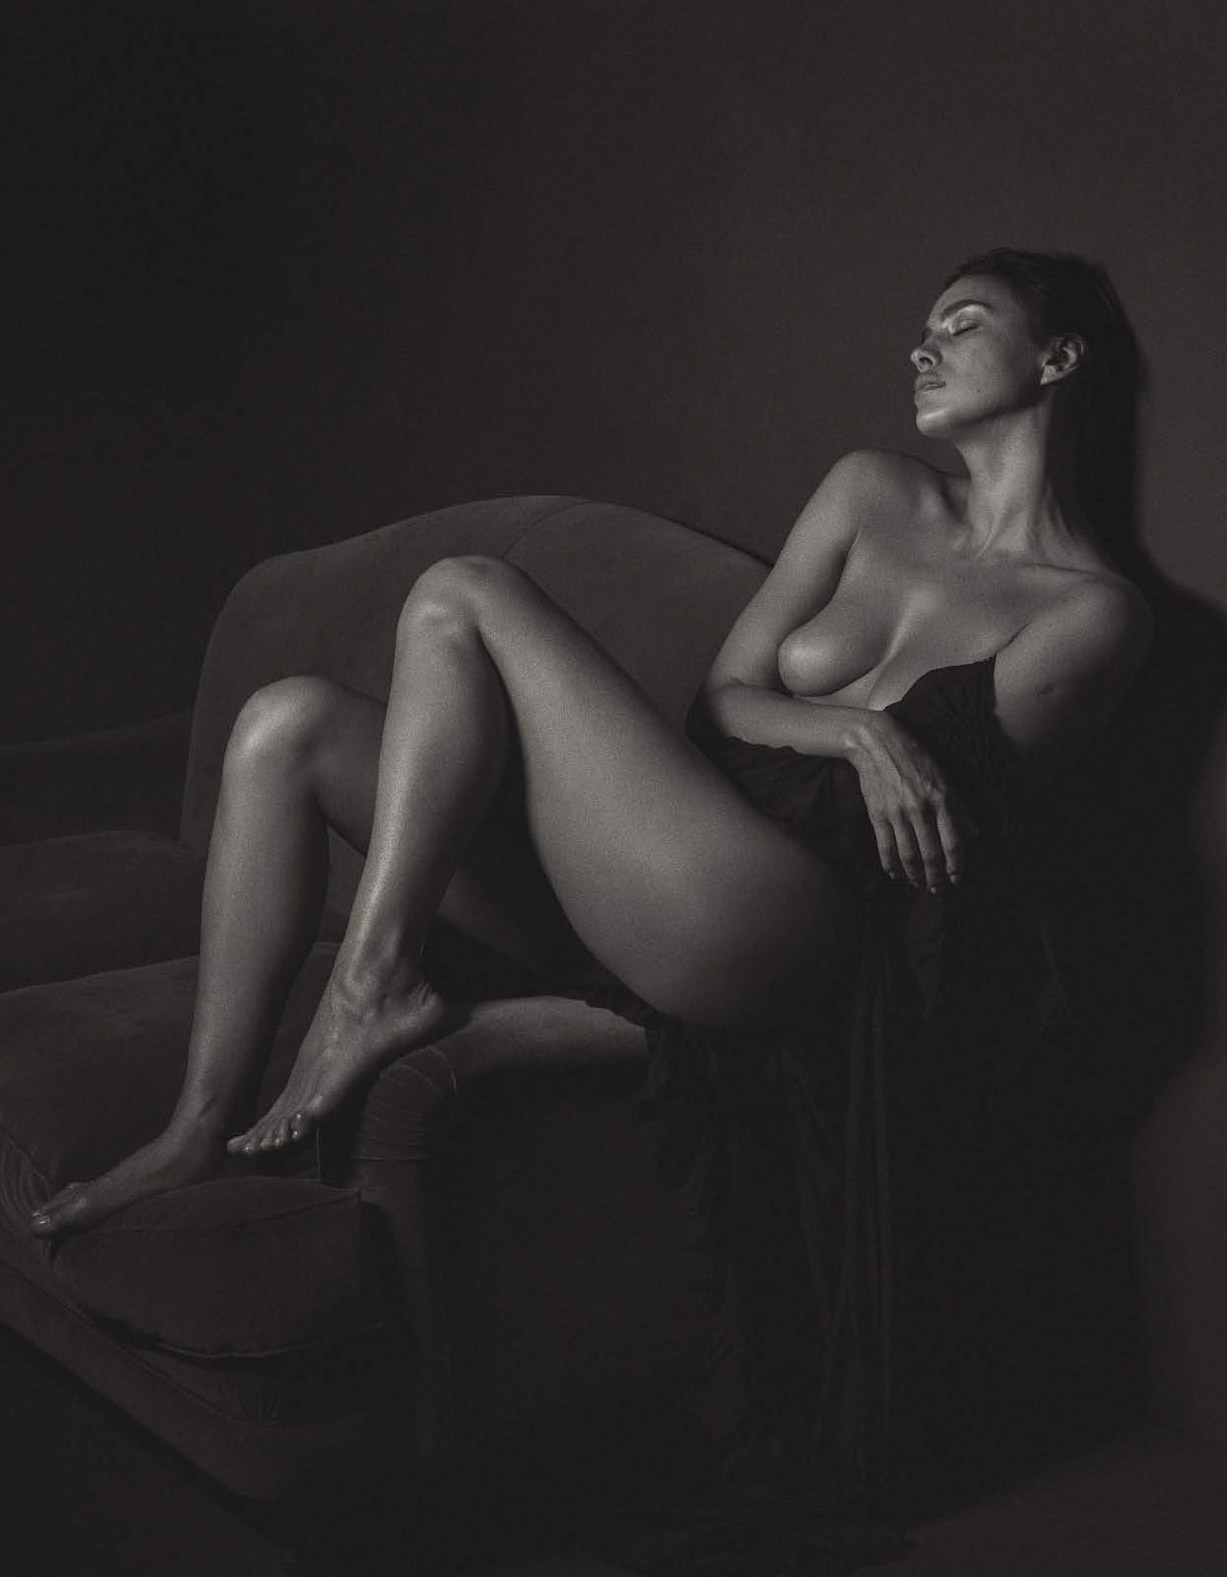 голая Ирина Шейк / Irina Shayk nude by Mario Sorrenti - GQ Italia september 2016